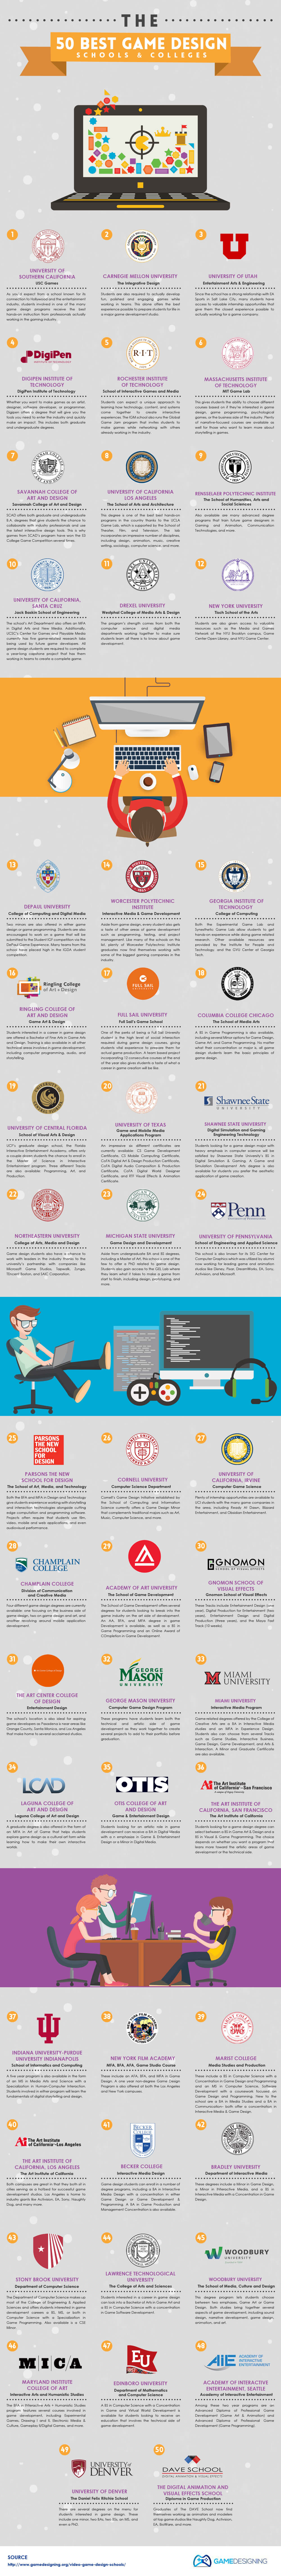 The Top 50 Colleges for Aspiring Game Designers